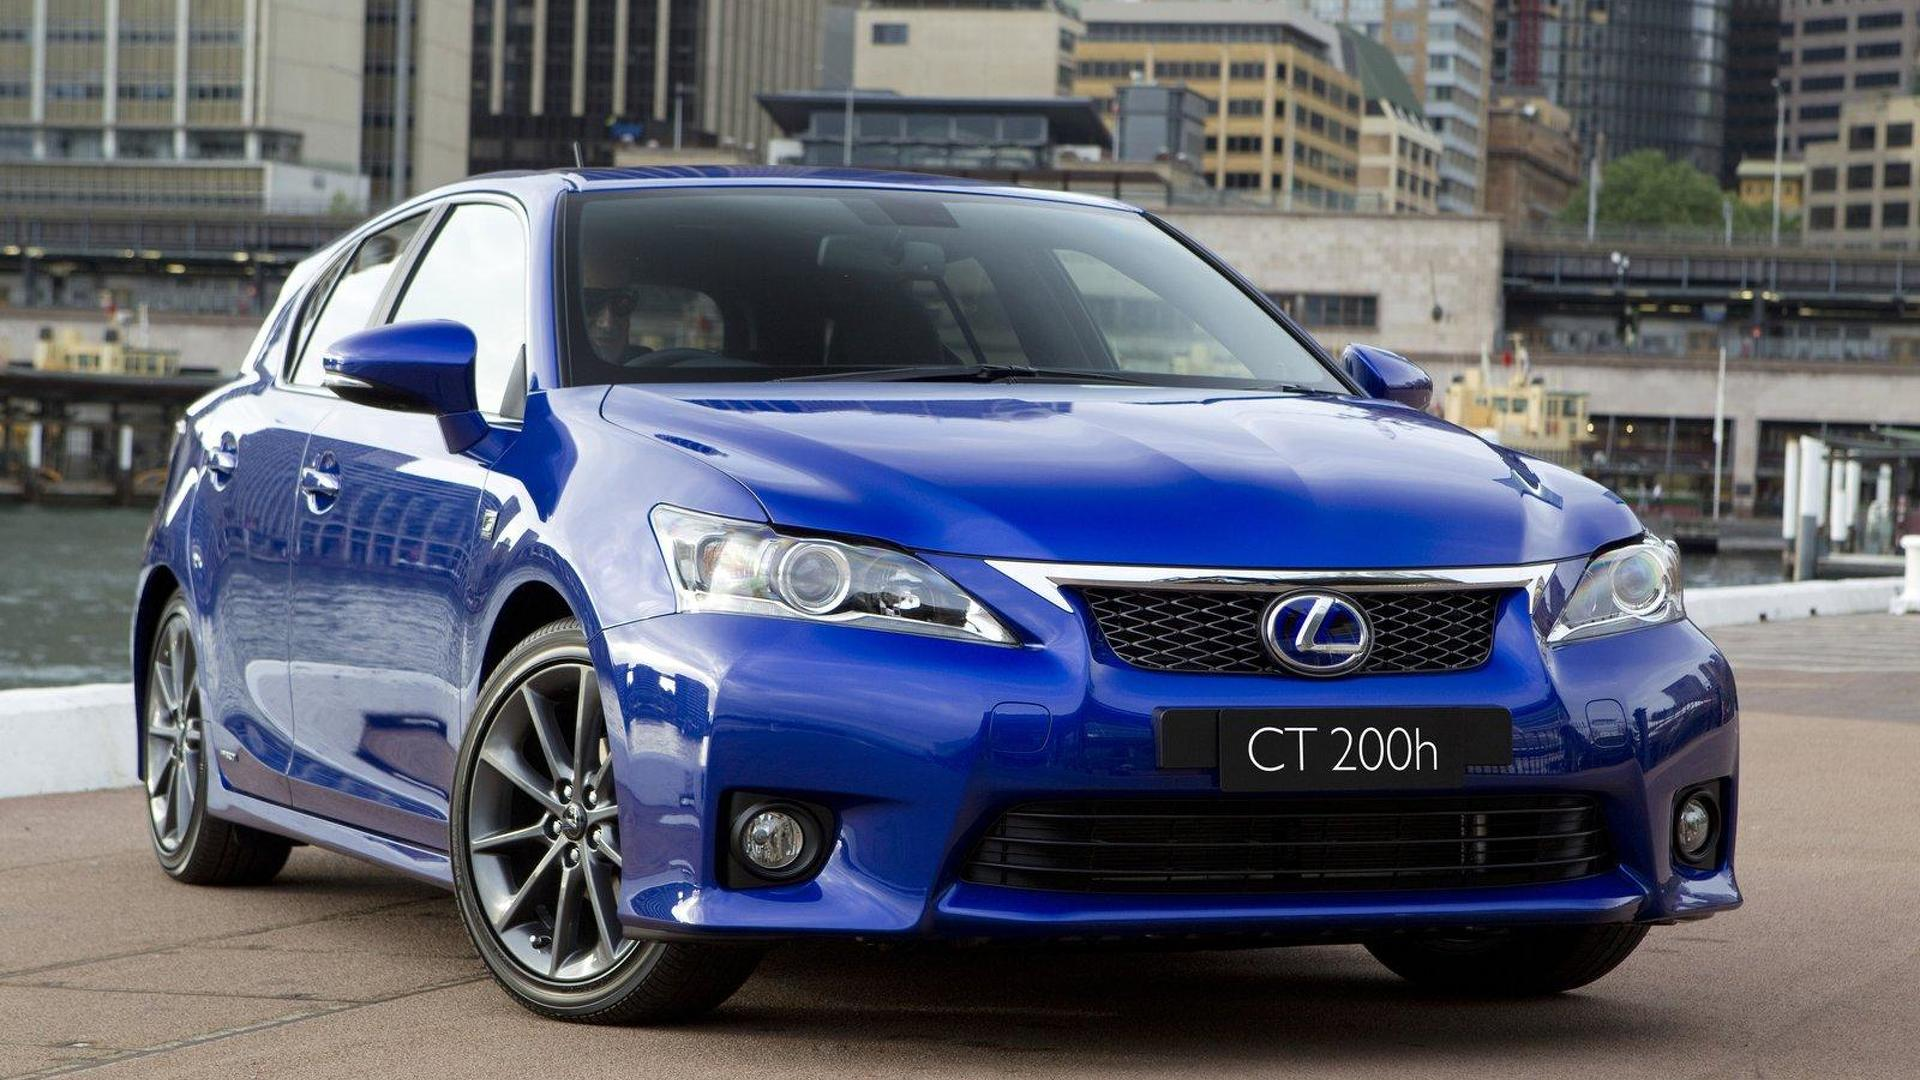 Lexus working on a high-performance CT200h - report